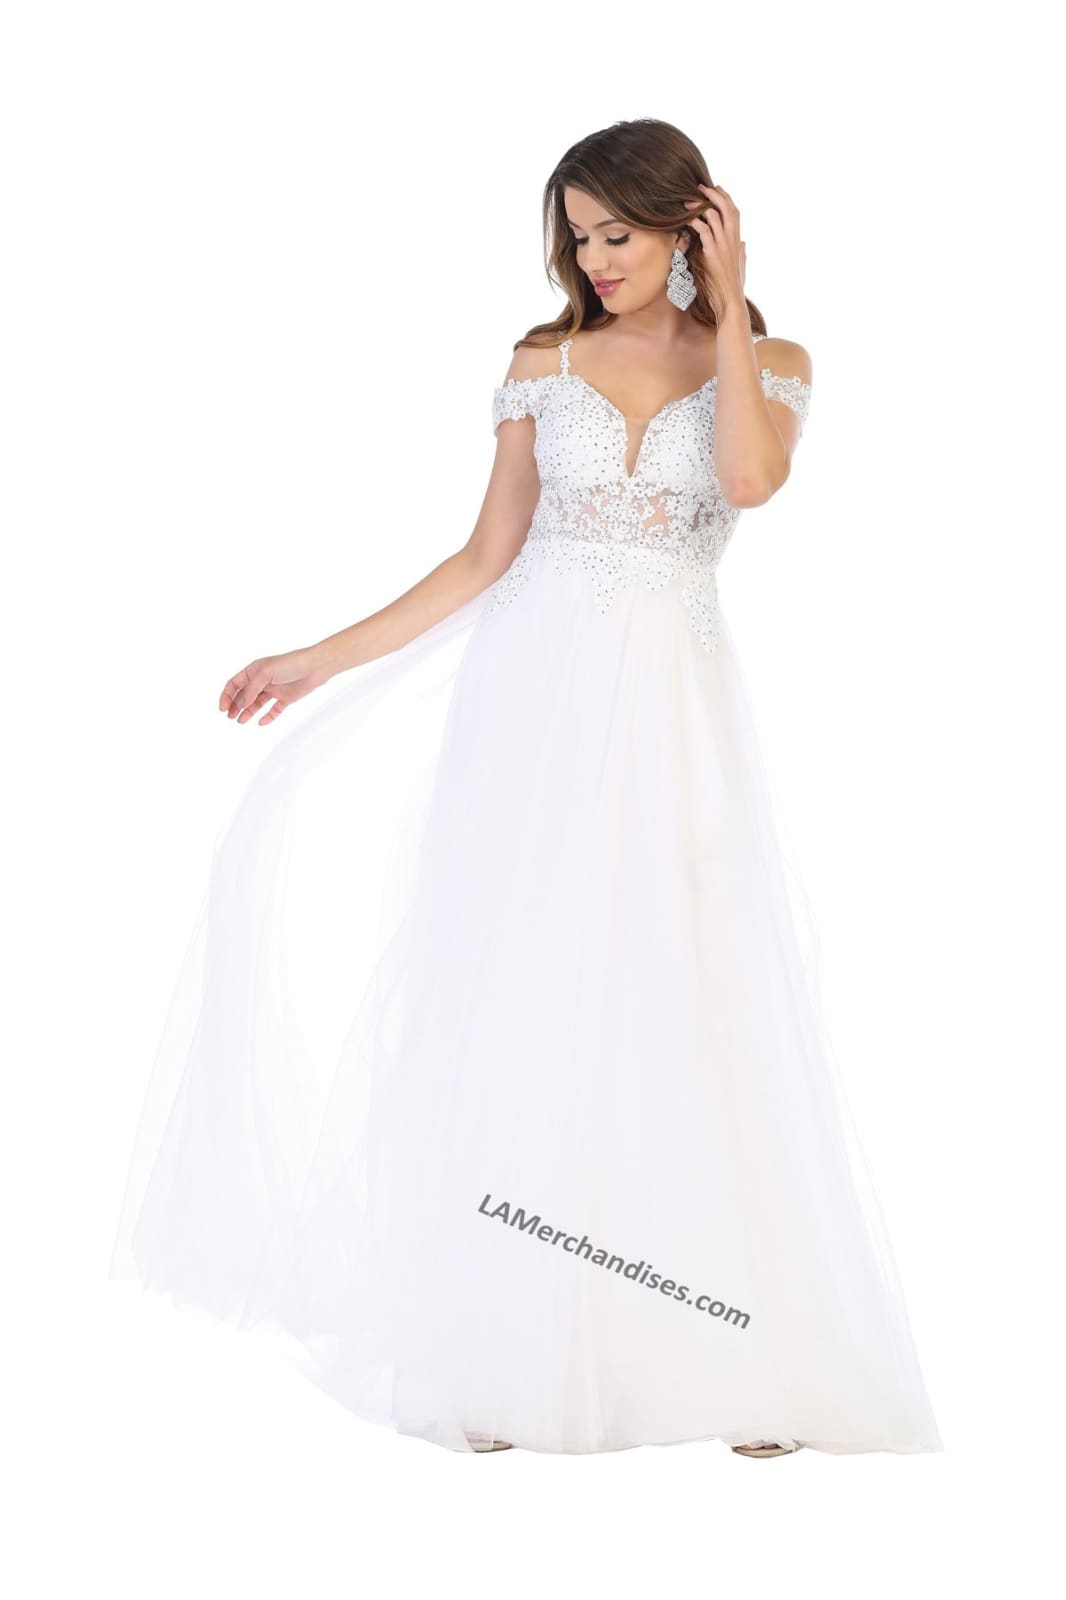 Off-the-Shoulder Bridal Dress- LA1694B